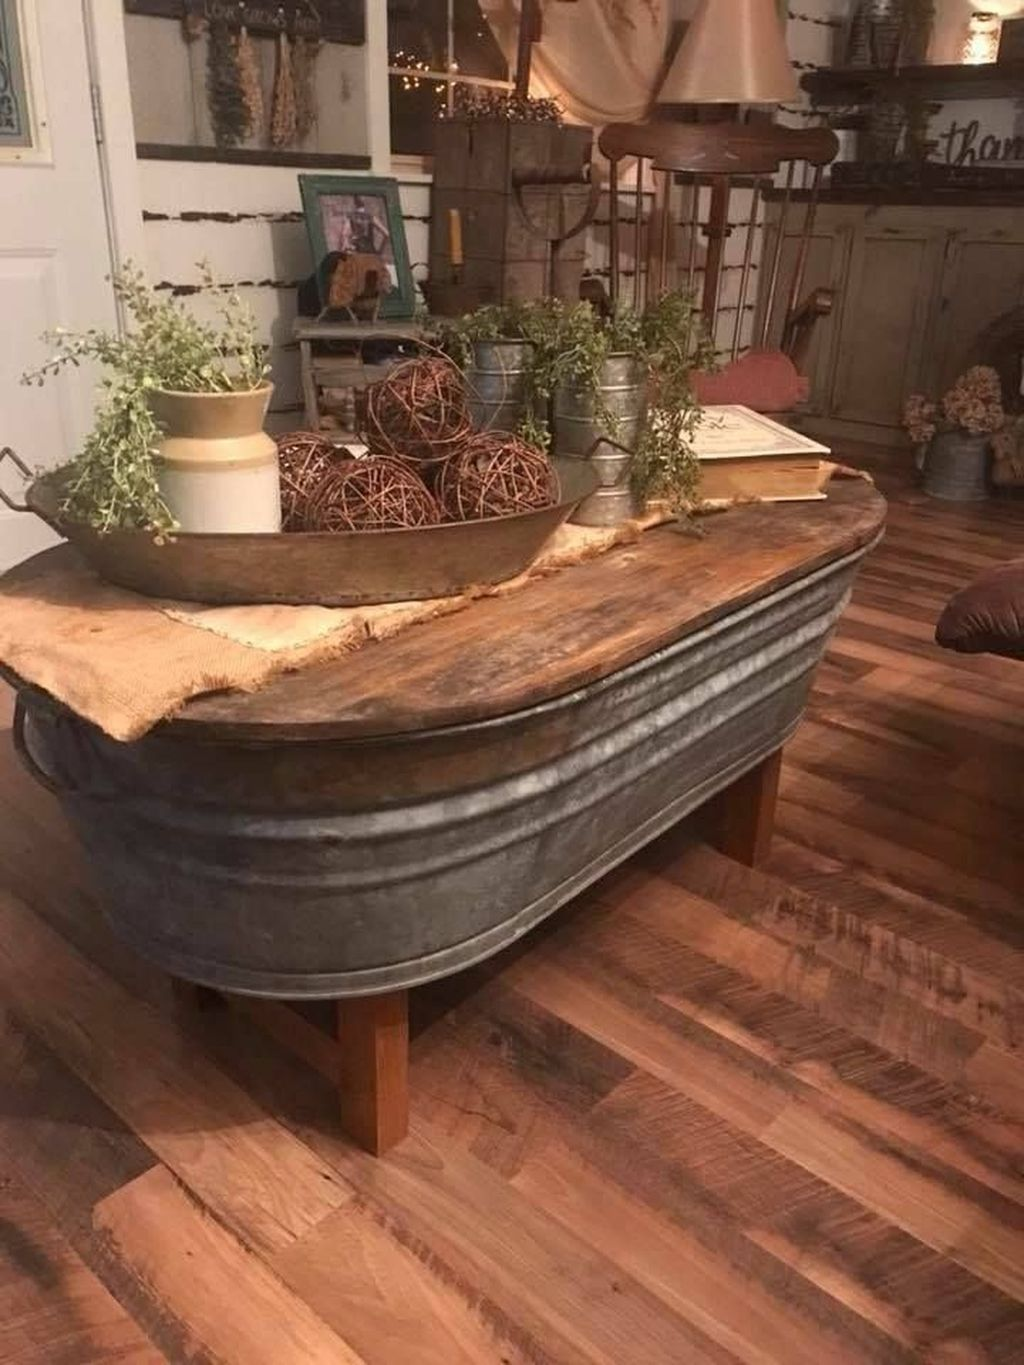 50 Nice Looking DIY Coffee Table is part of Farmhouse decor - If you are quite new in DIY stuffs, these tips in building the DIY coffee table will surely be something nice to try